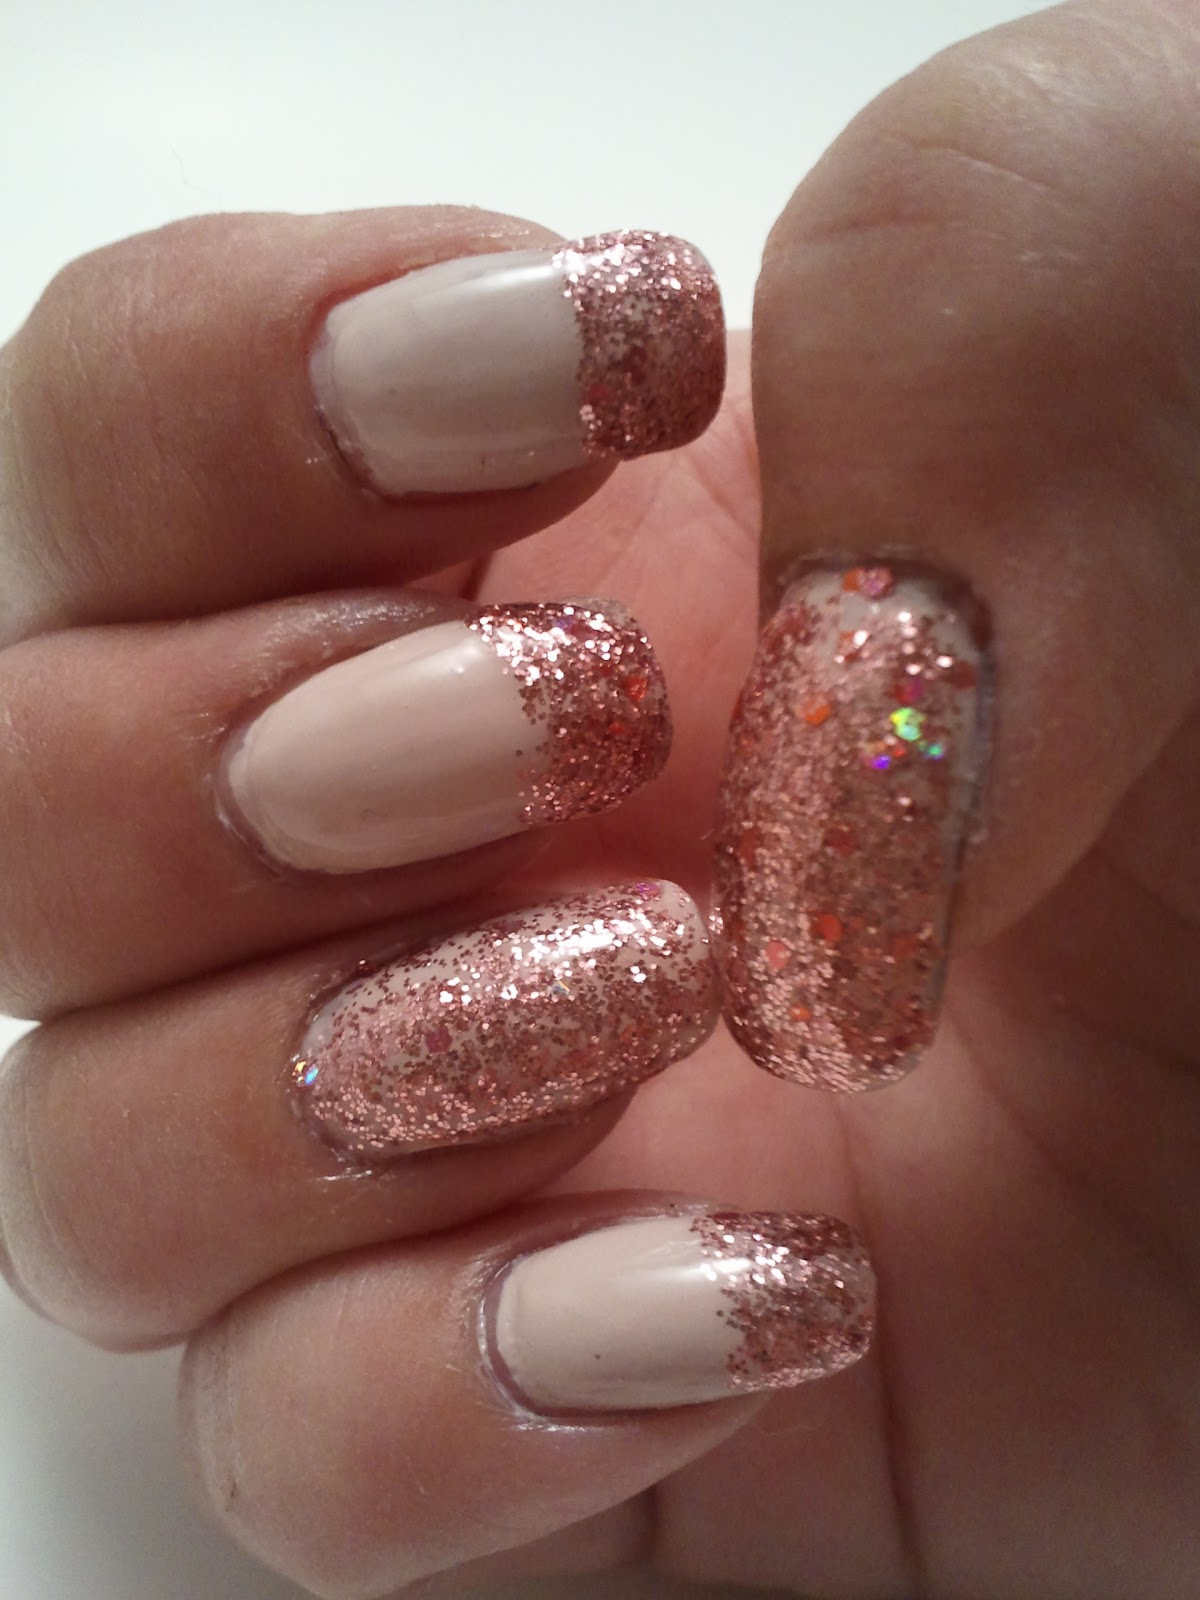 Glittery Fingers & Sparkling Toes: French Nail Tutorial